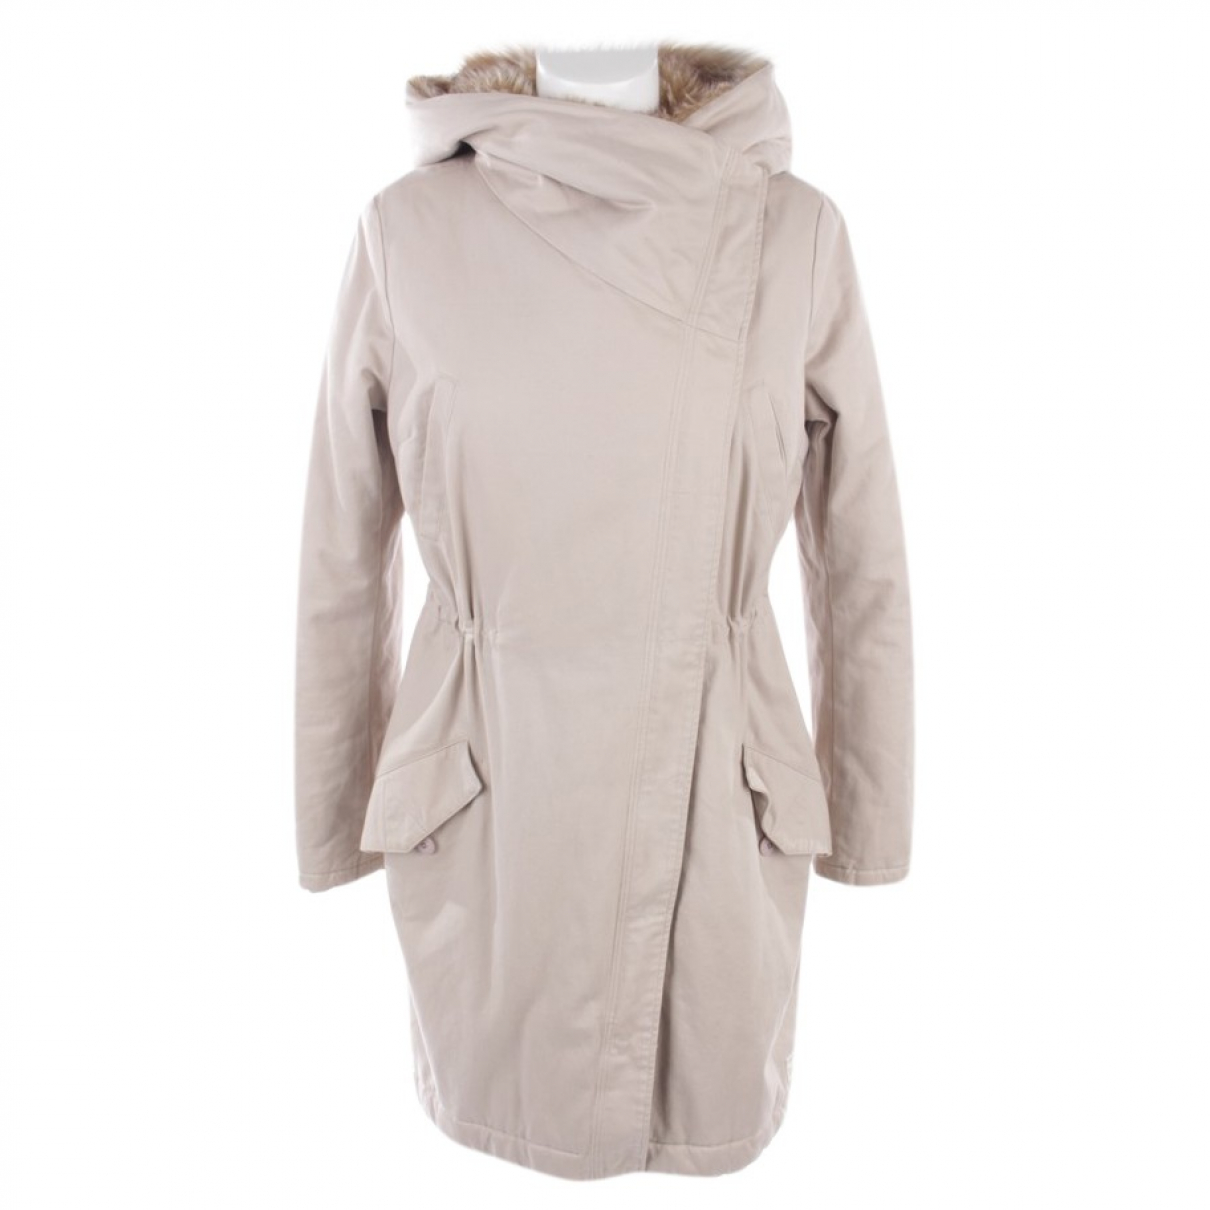 Autre Marque \N Beige Cotton jacket for Women 38 FR